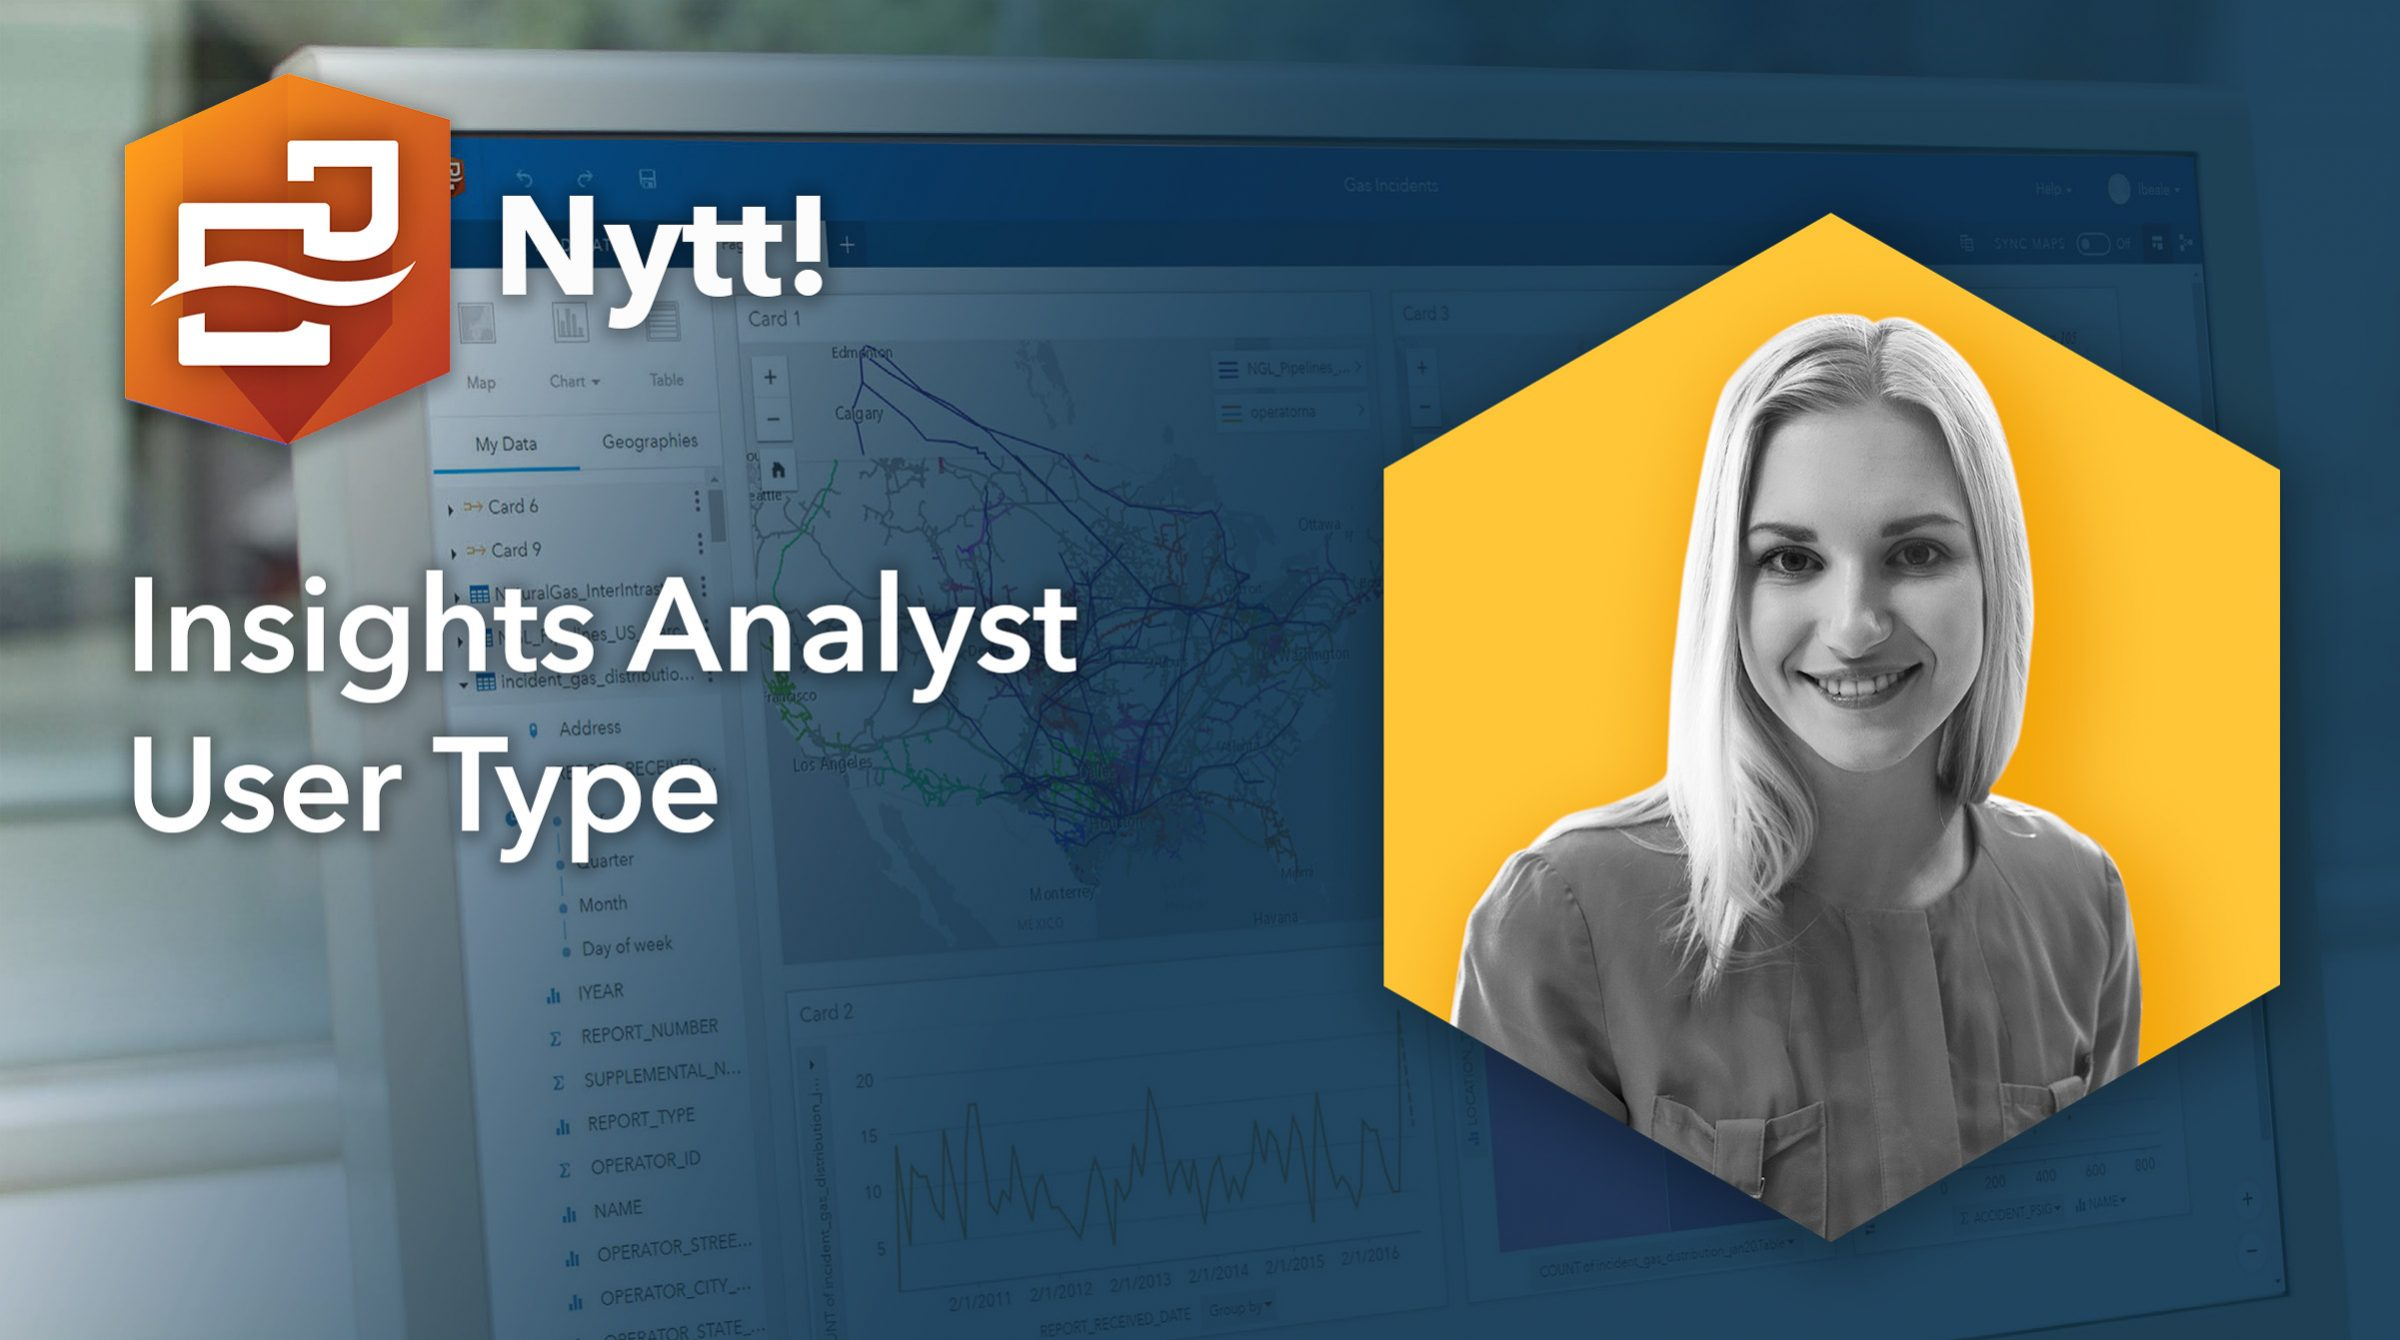 Insights Analyst User Type